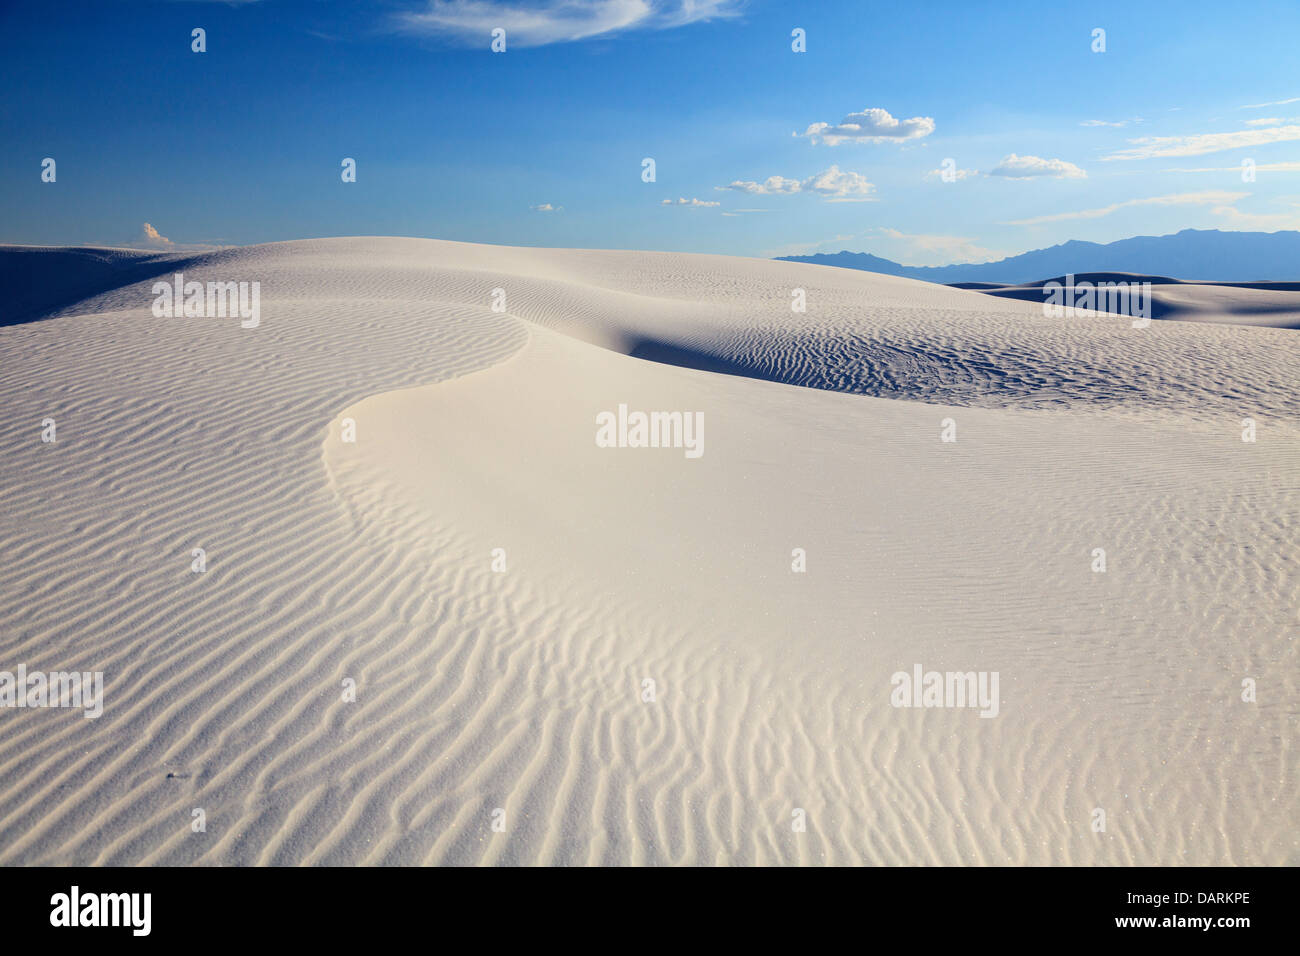 USA, New Mexico, White Sands National Monument - Stock Image